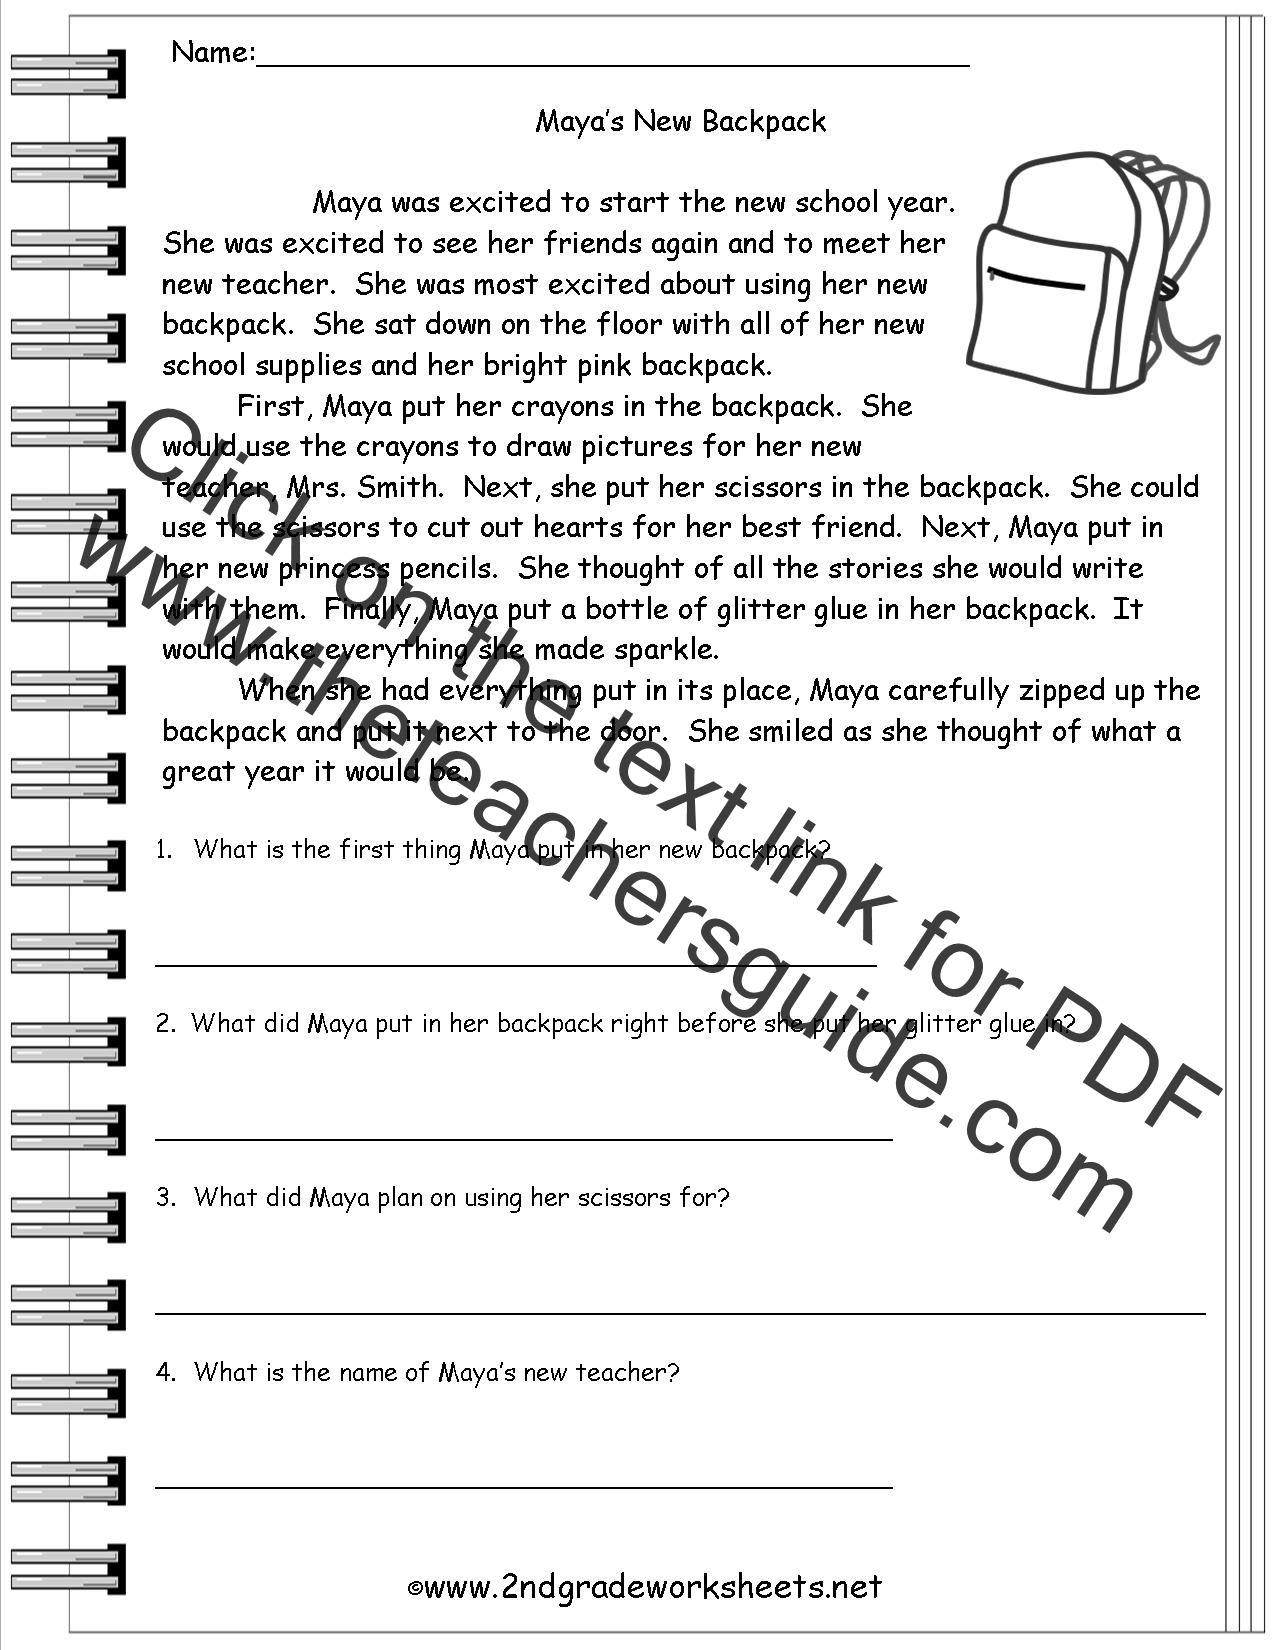 Worksheets Comprehension Worksheets Grade 2 reading worksheeets worksheets